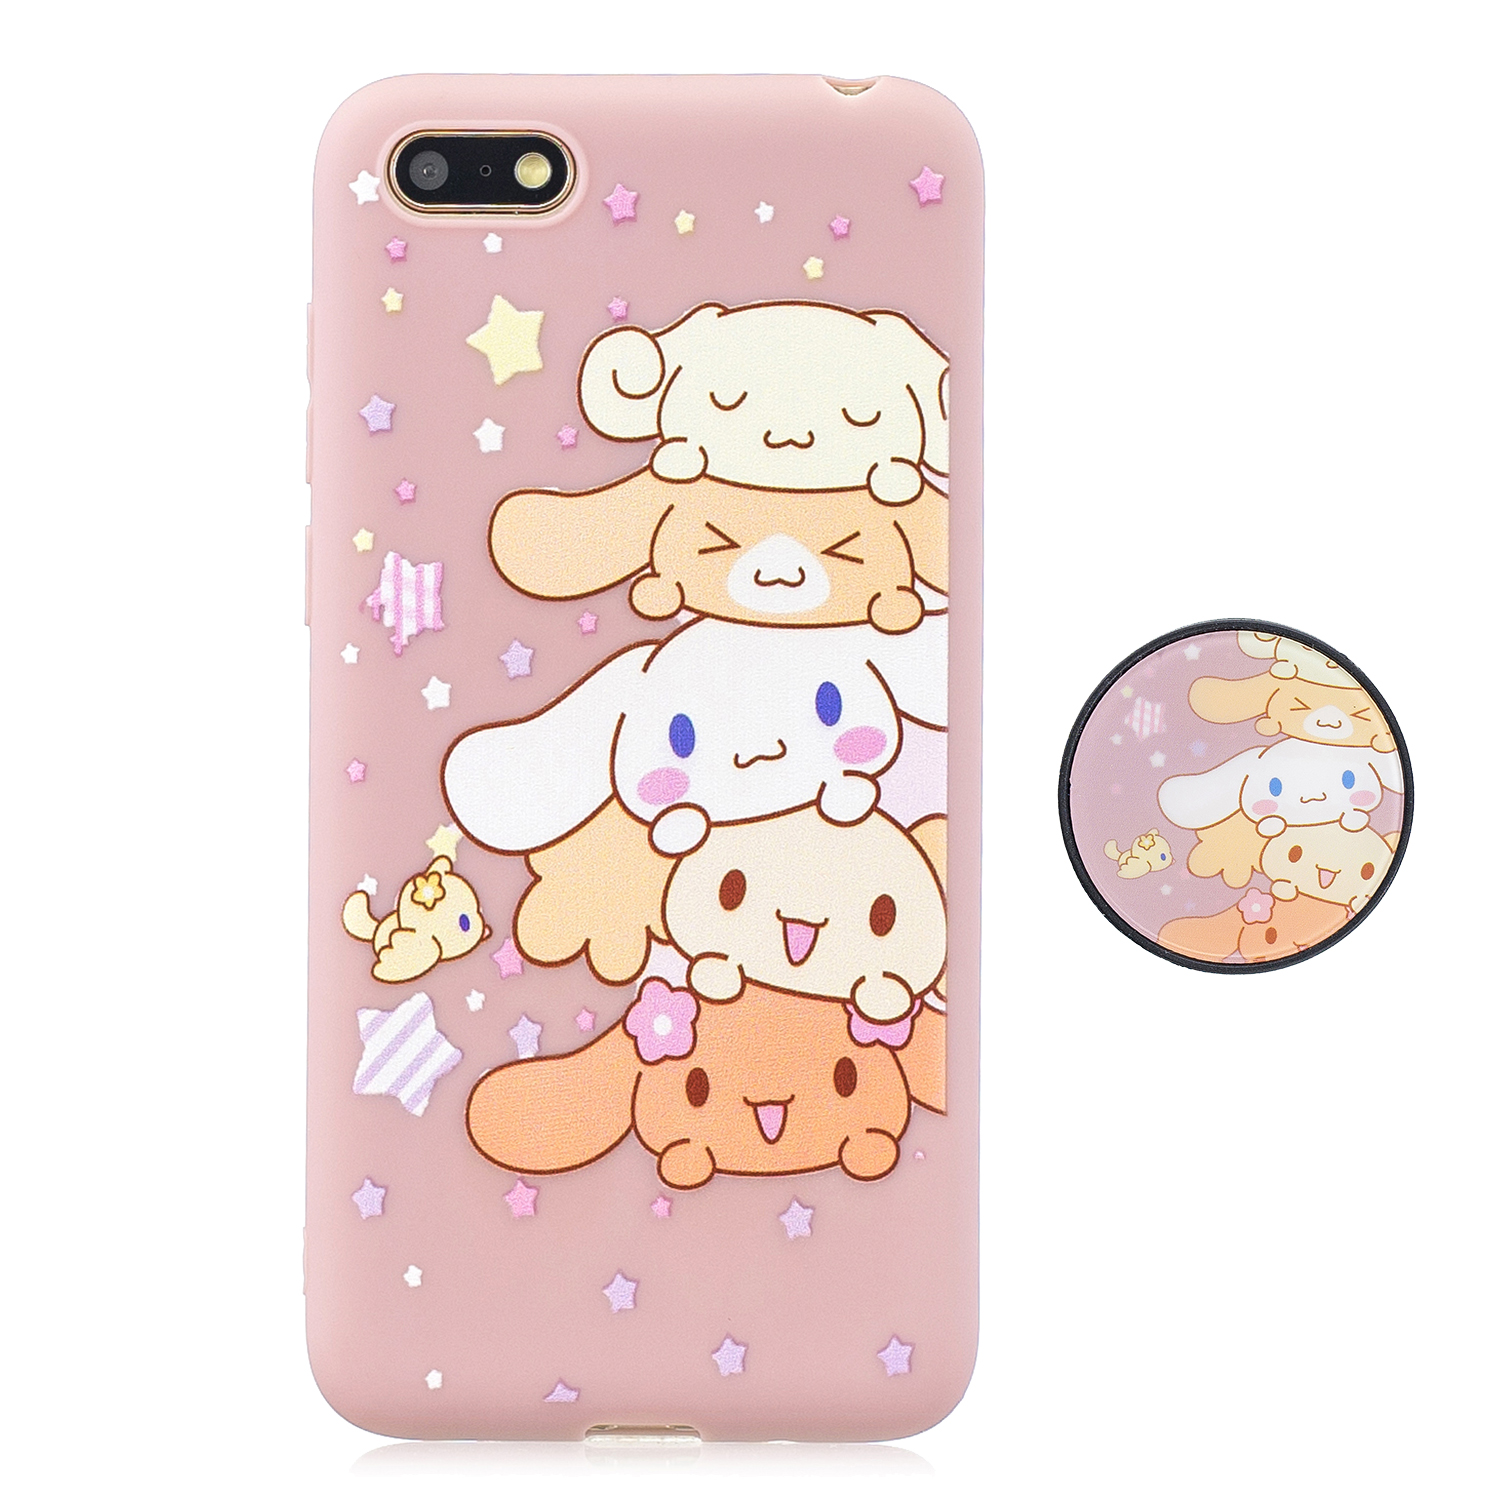 For HUAWEI Y5 2018 Pure Color Phone Cover Cute Cartoon Phone Case Lightweight Soft TPU Full Cover Phone Case with Matching Pattern Adjustable Bracket 1